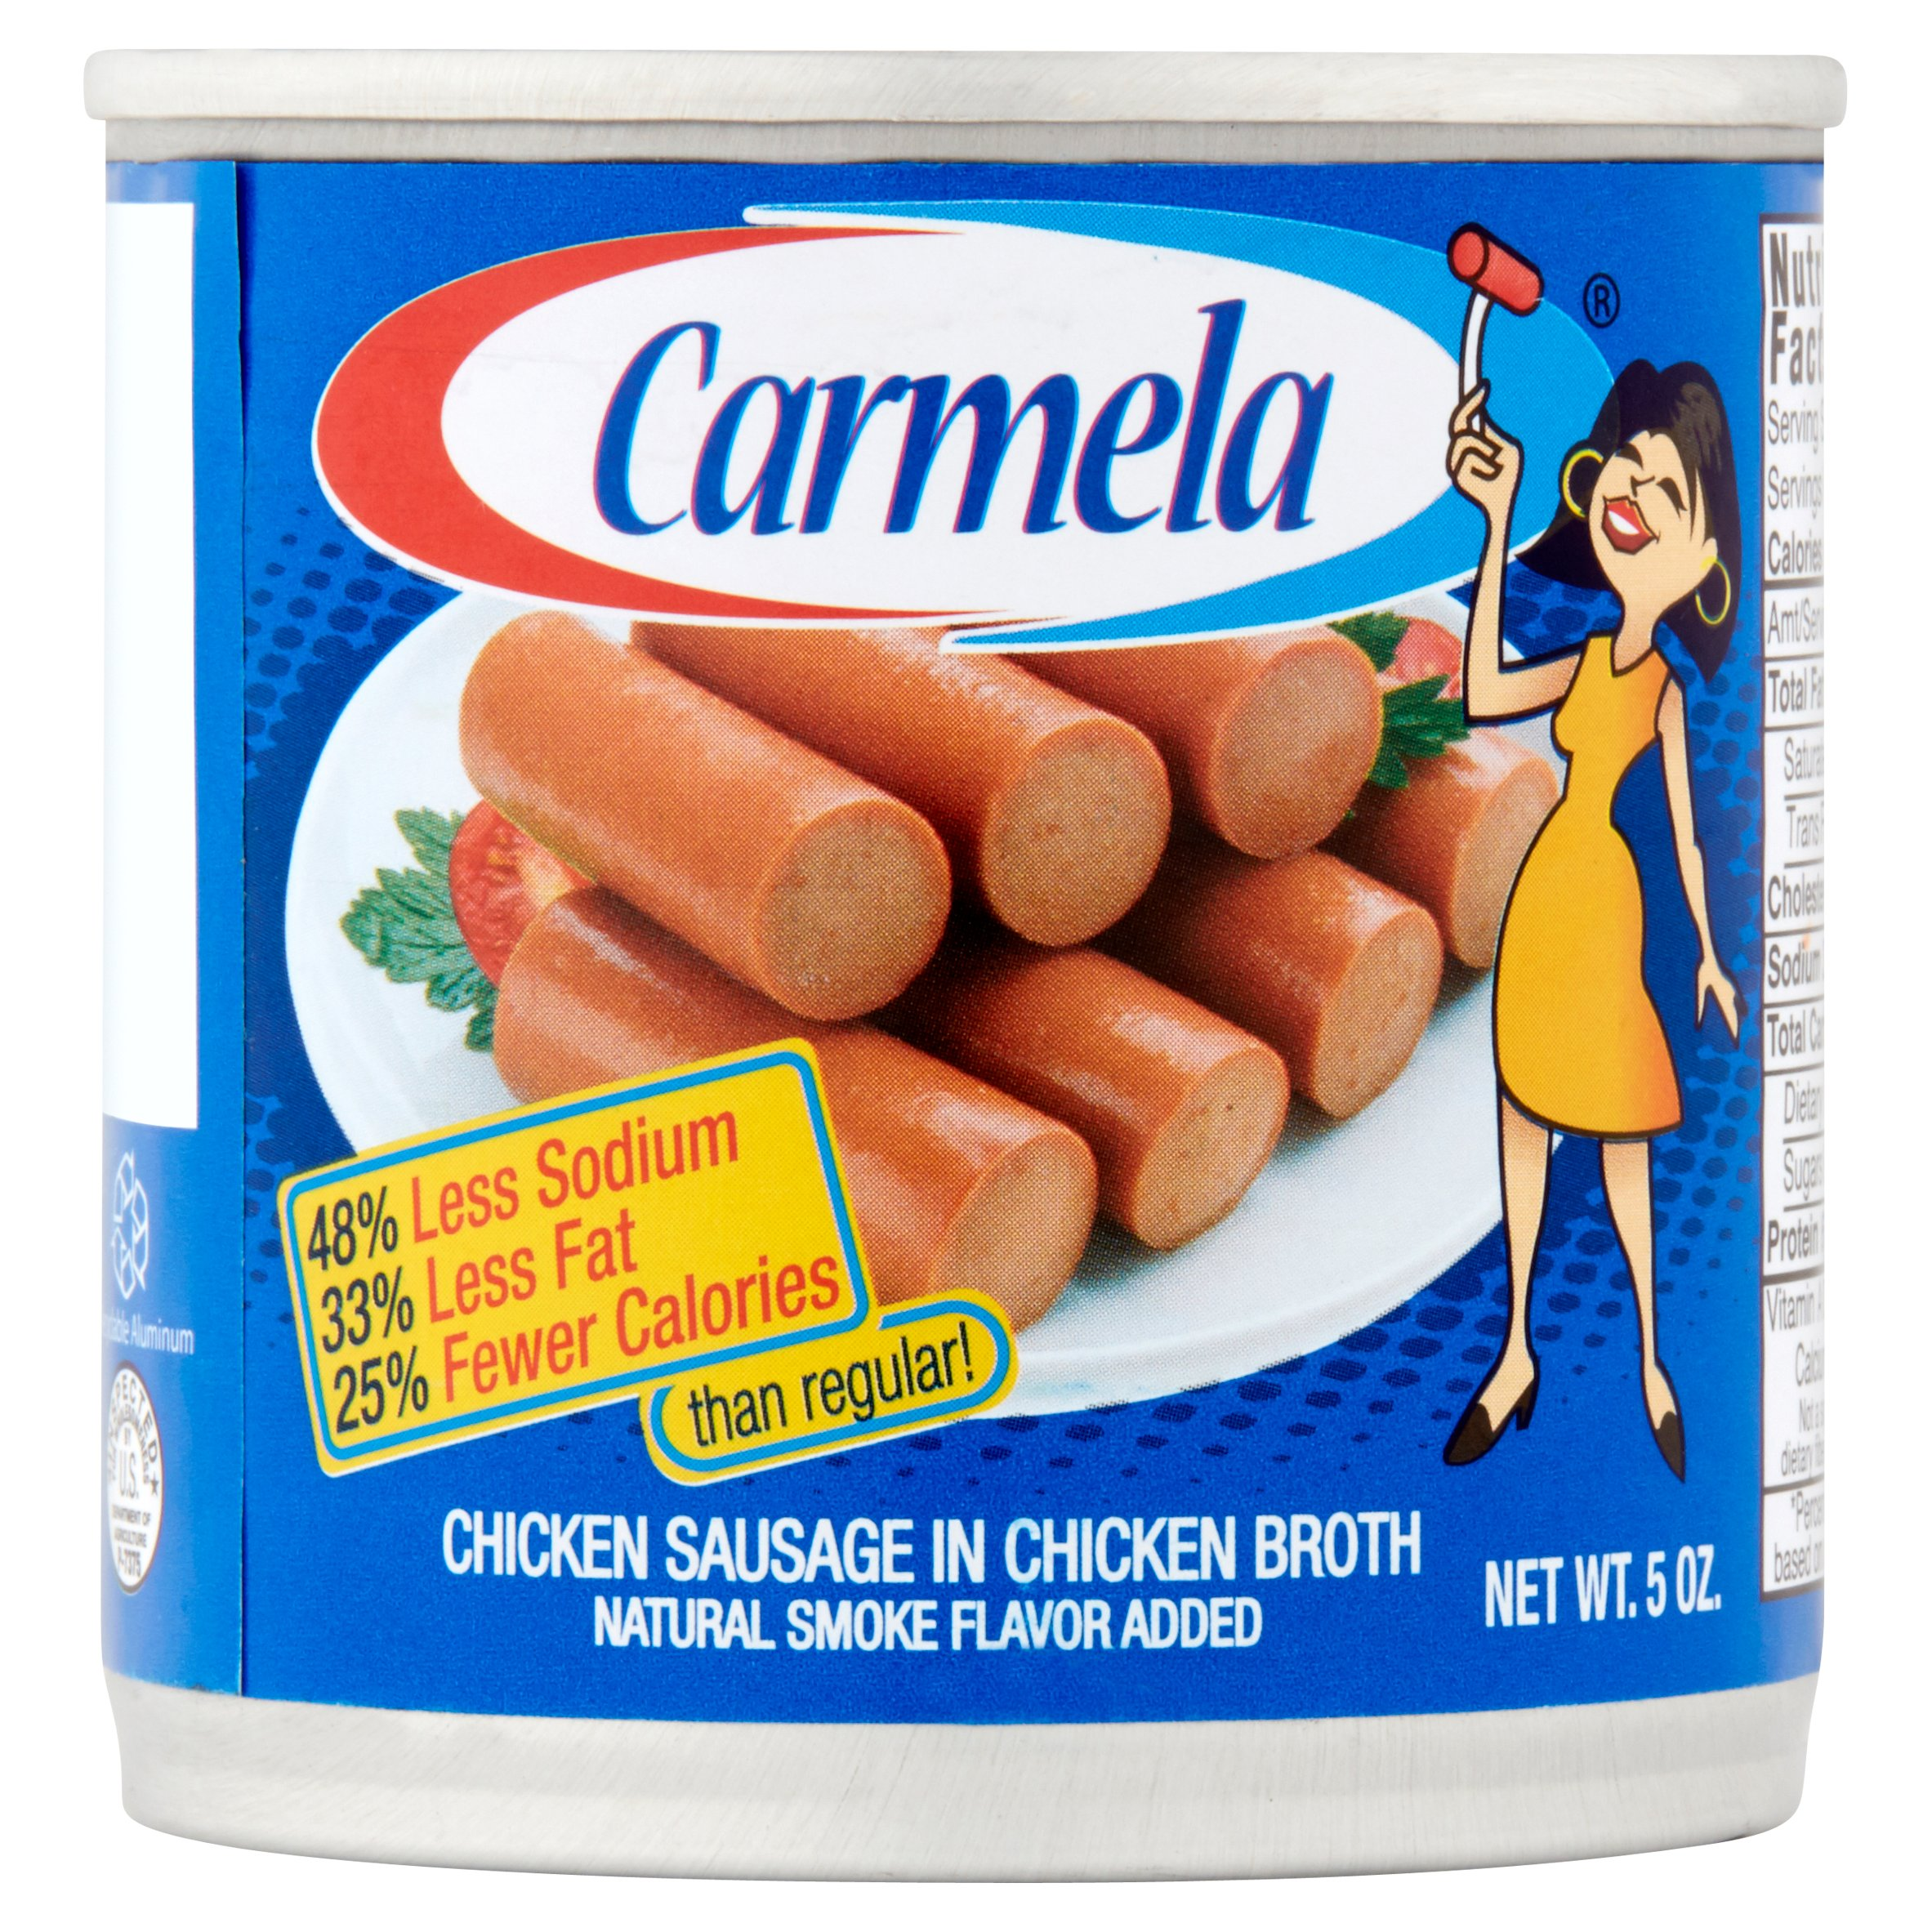 Carmela Chicken Sausage in Chicken Broth, 5 oz by Century Packing Corp.